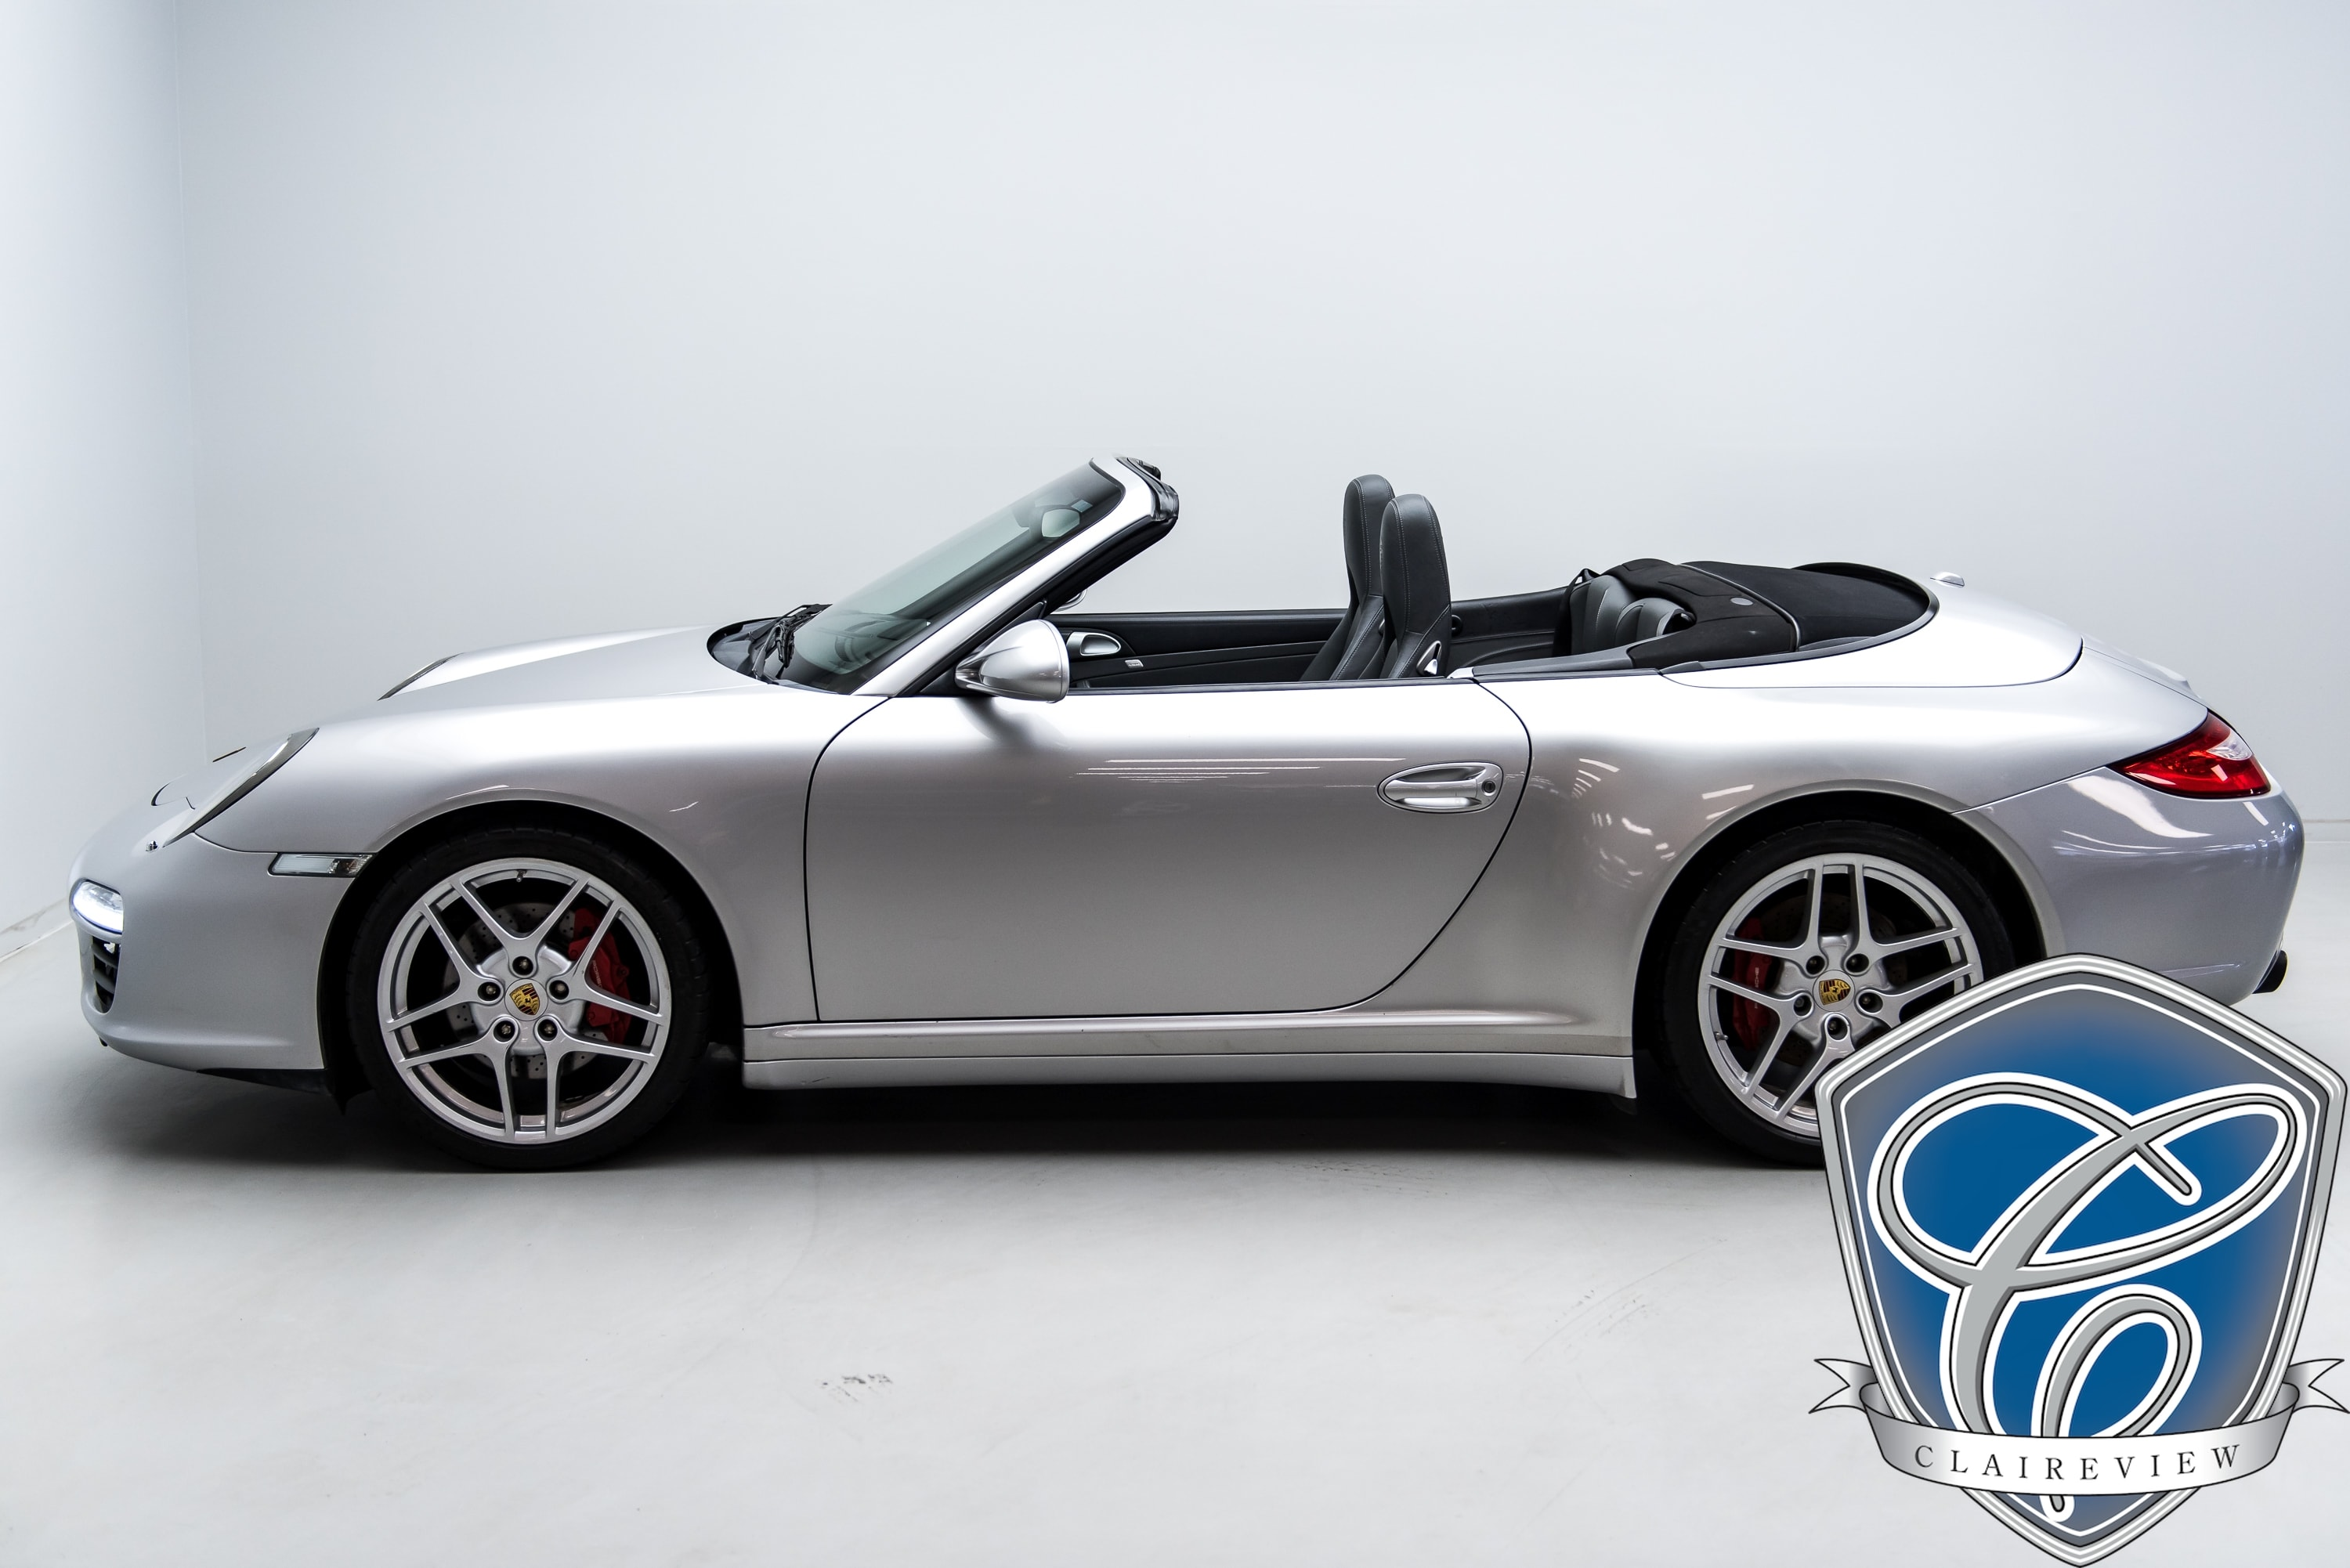 2009 Porsche 911 Carrera 4S Cab, 6 Speed, Sport Chrono, Bose Convertible